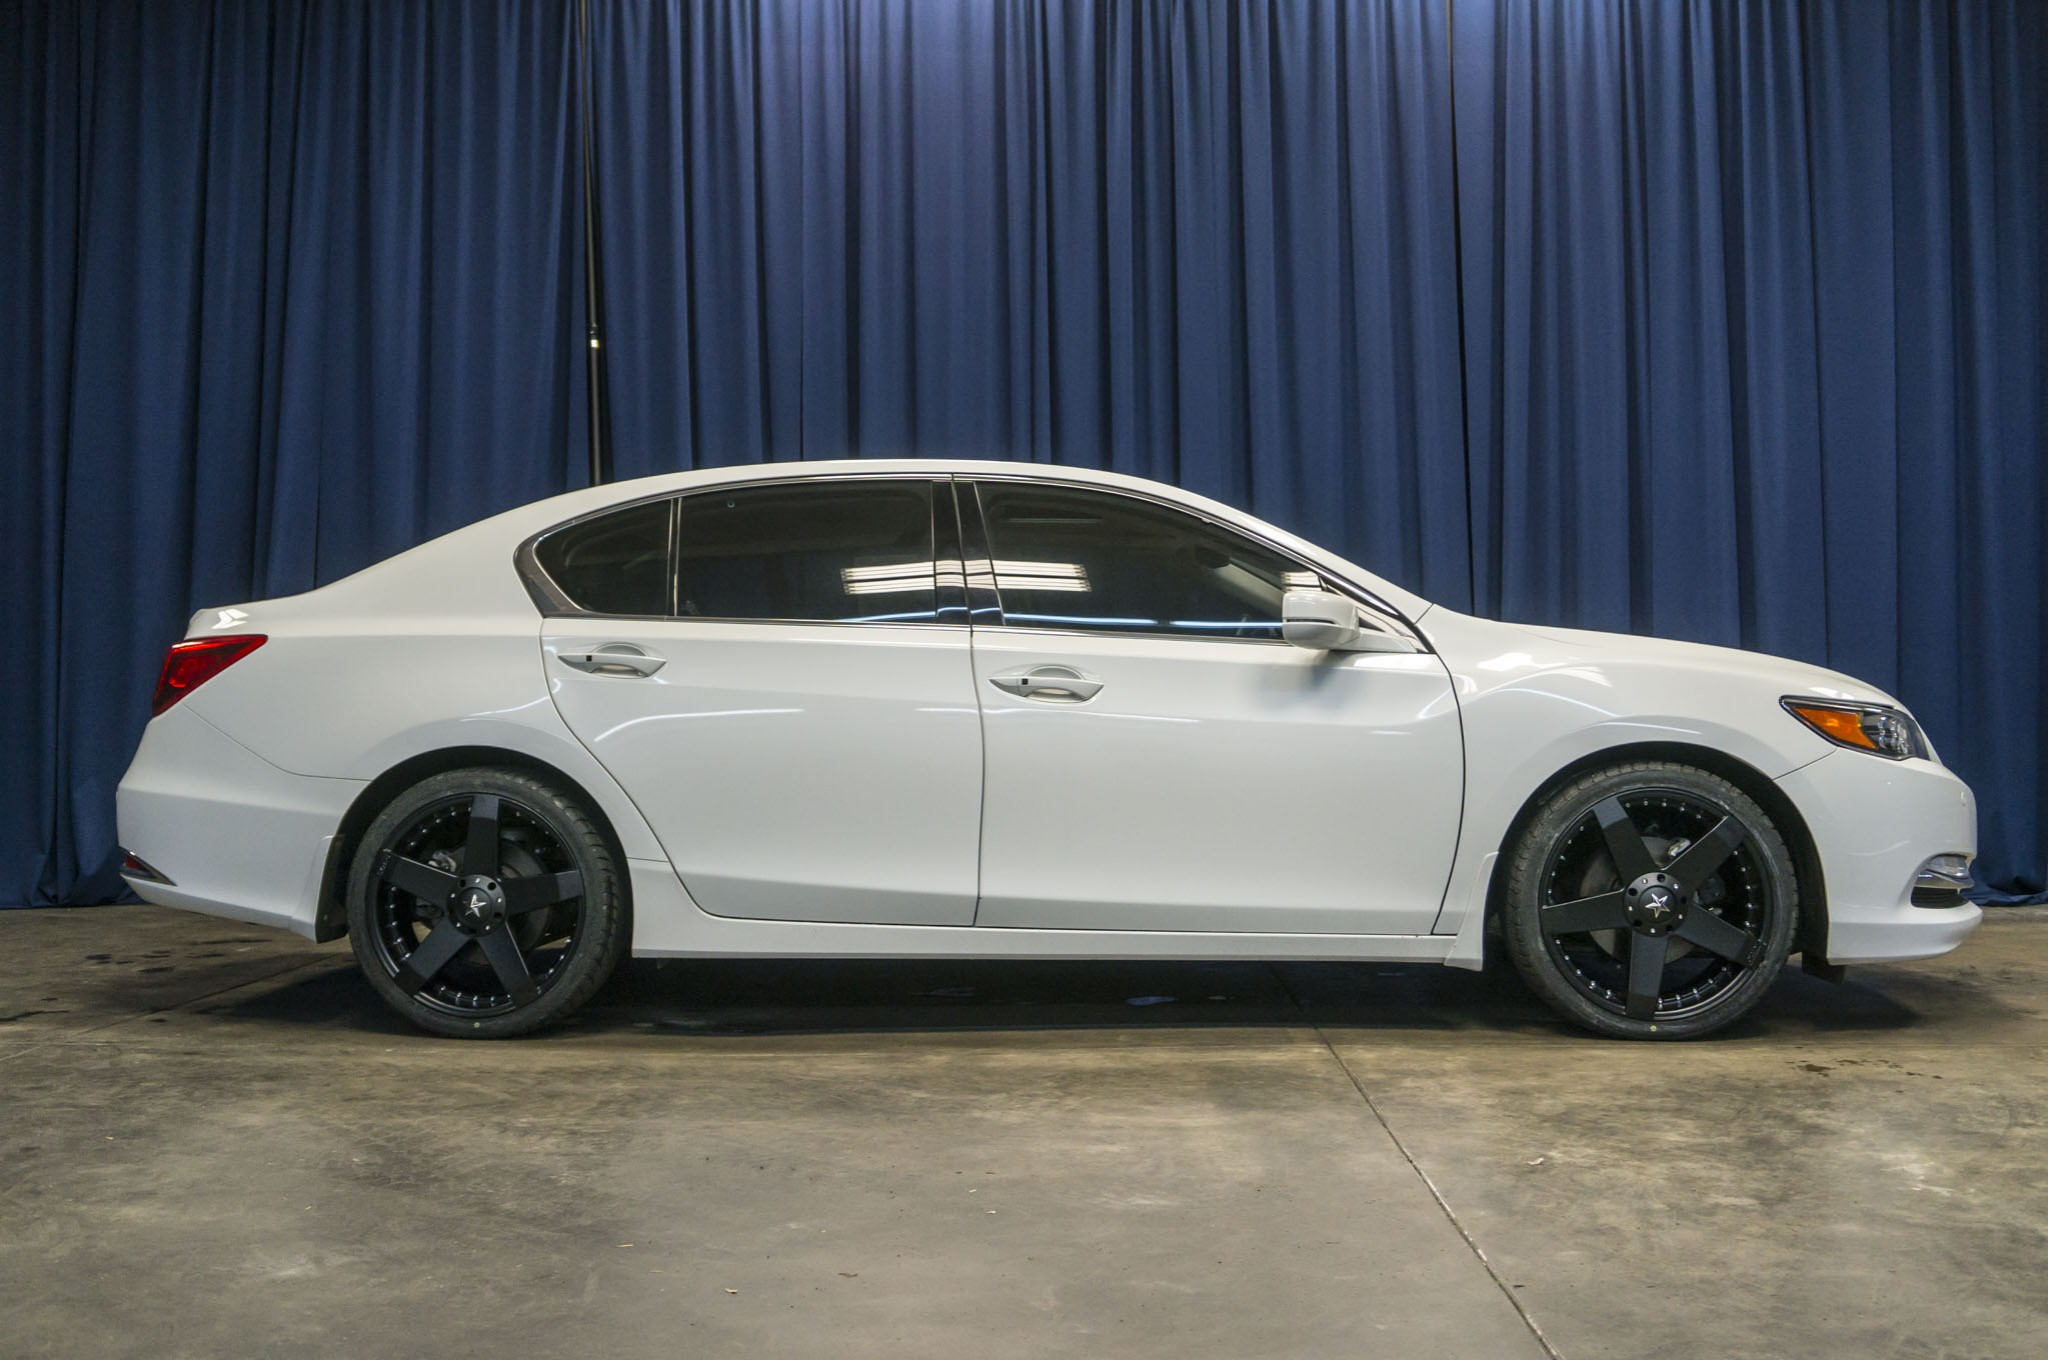 s sport acuras rlx sedans carscoops wants acura boss new hybrid photo gallery sale for exciting